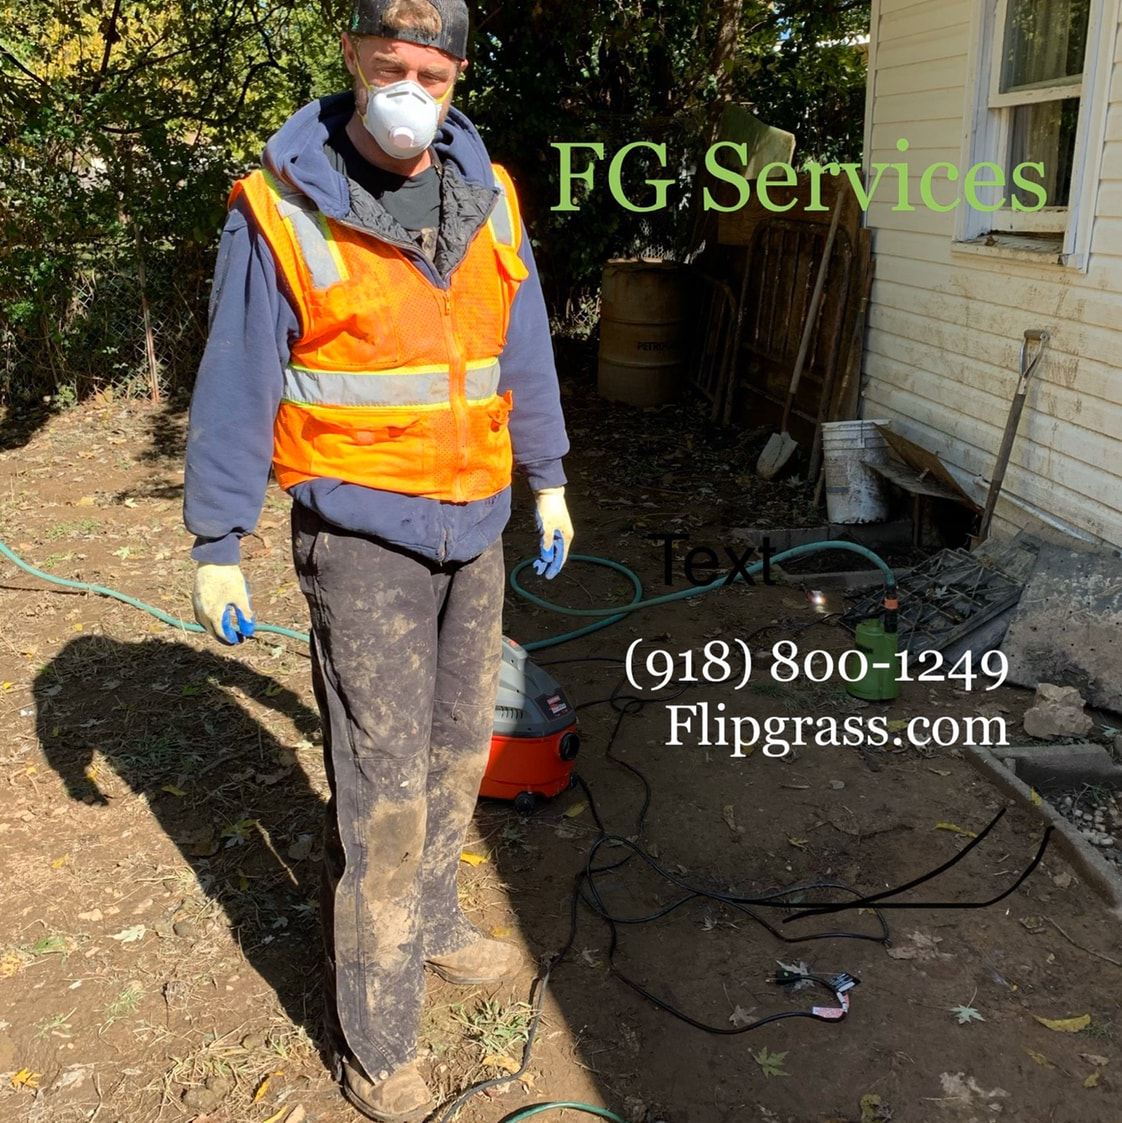 Flipgrass LLC